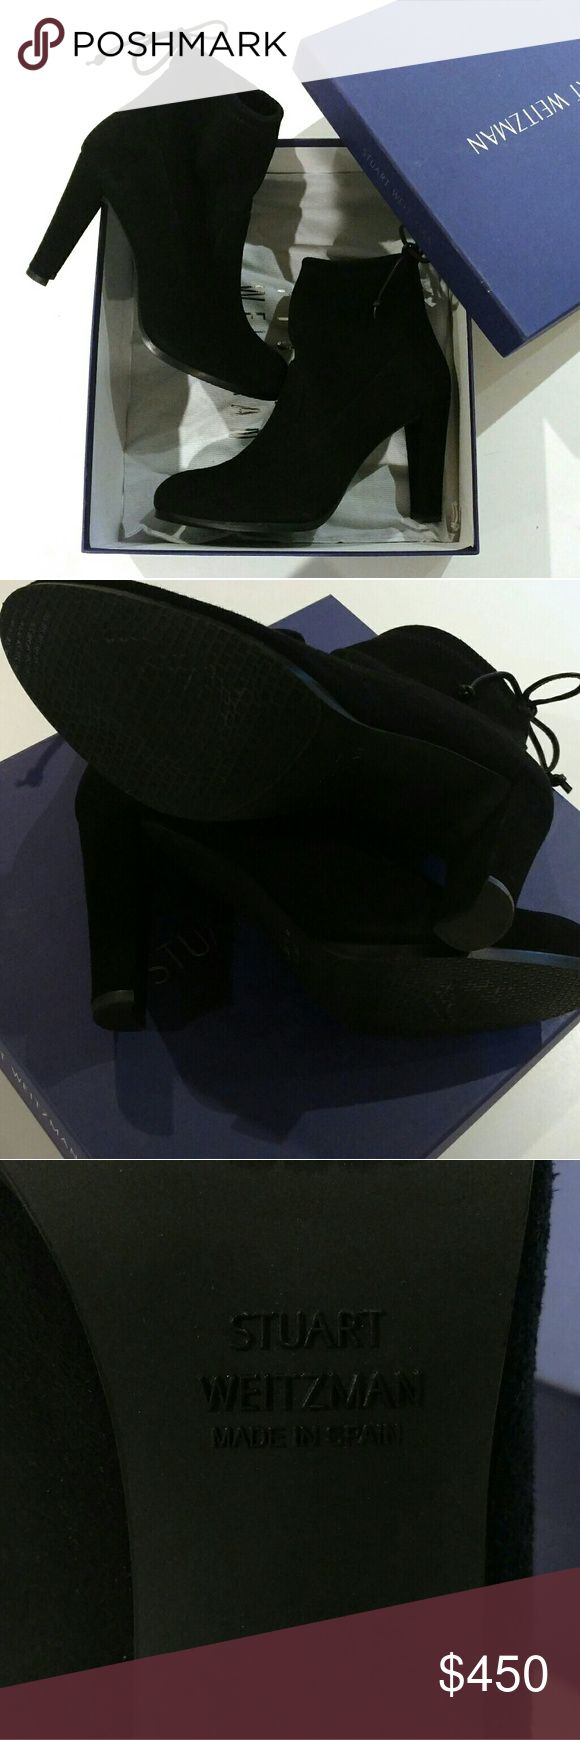 NIB💥Stuart Weitzman Mitten Perfection Glove Boot Versatile + chic New in box black suede leather boots by Stuart Weitzman, same style as the coveted Highland with an ankle boot sihouette.  Crafted in Ultrastretch Suede, signature tie closure at top in 100% Goatskin leather.  Made in Spain, $595 + tax retail.  'New in box, Nordstrom Exclusive. No❌Trades|No❌Lowballers.  Modeled by Gigi Hadid, stock photos shown to display fit.  22% off PRICE DROP.  💥SOLD OUT!💥 Stuart Weitzman Shoes Ankle…